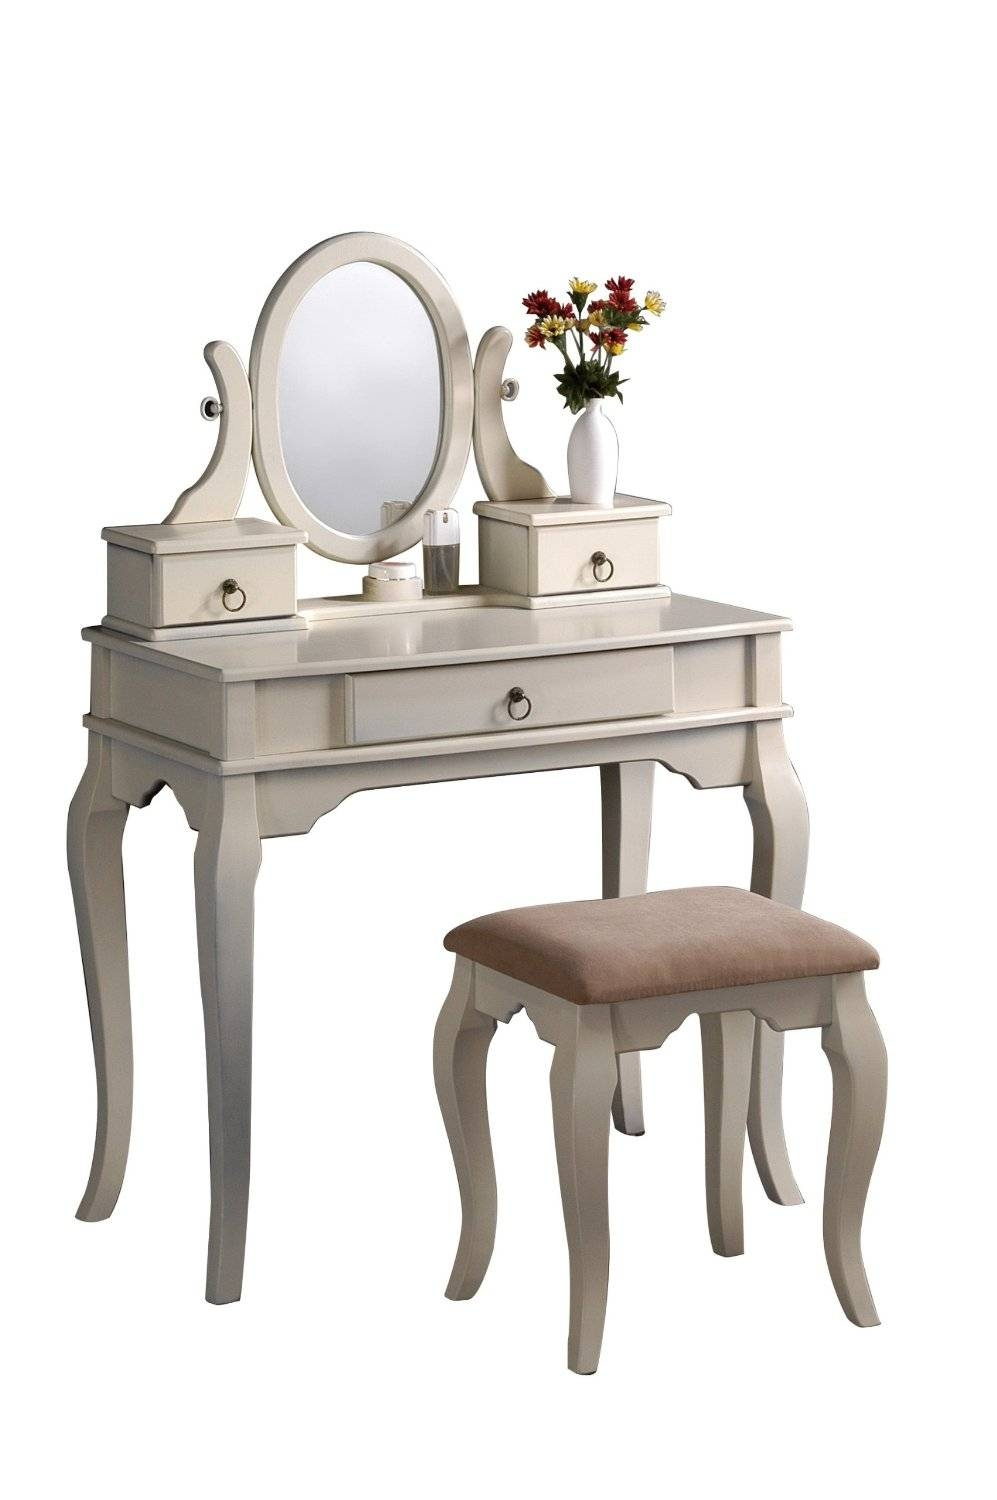 Vanity Tables With Oval Mirror intended for Antique White Oval Mirrors (Image 14 of 15)